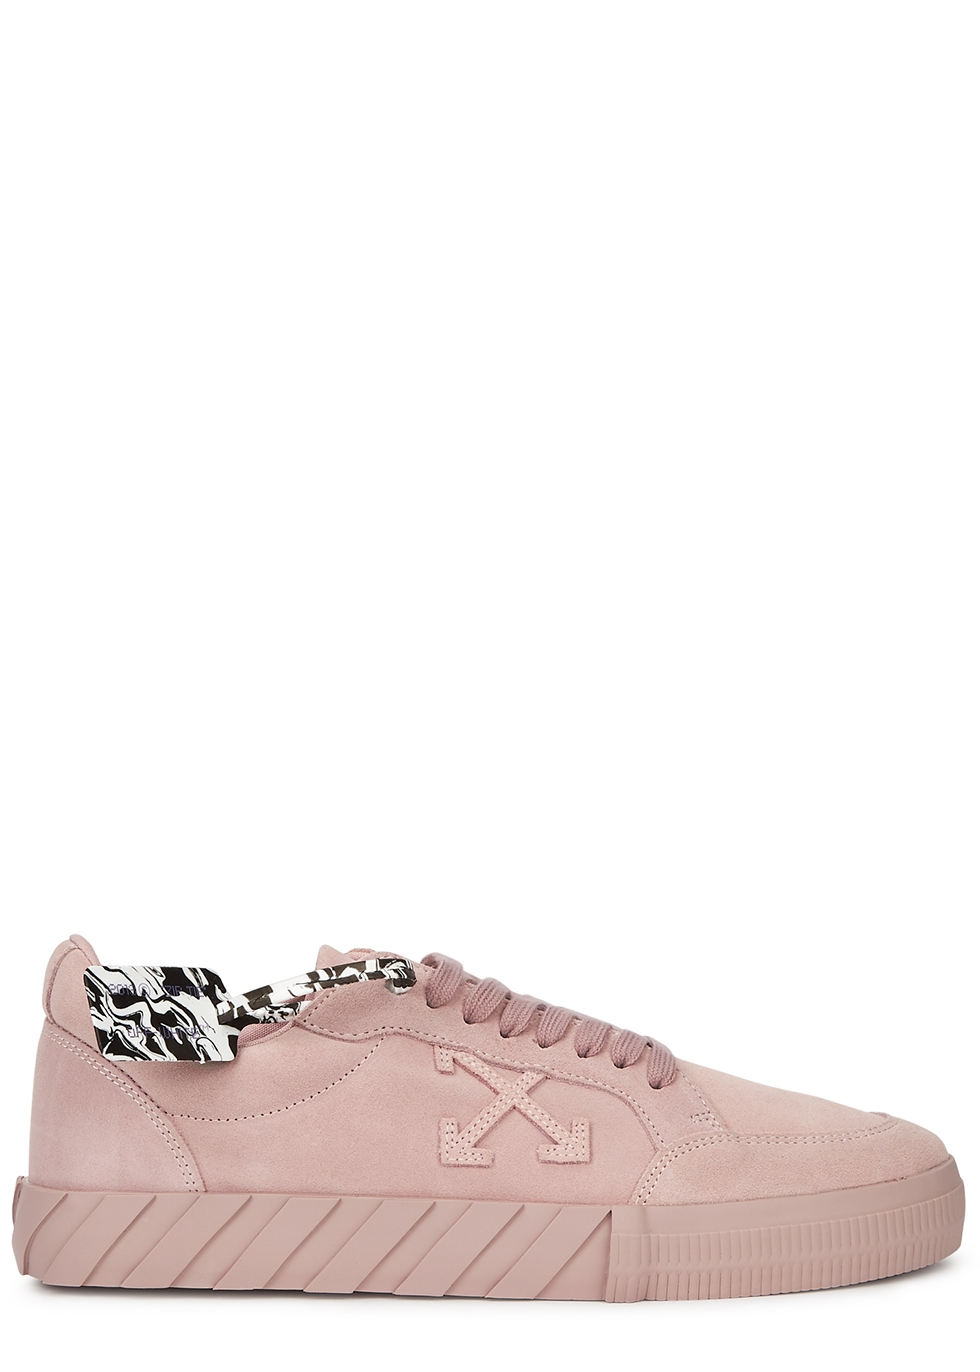 off white pink